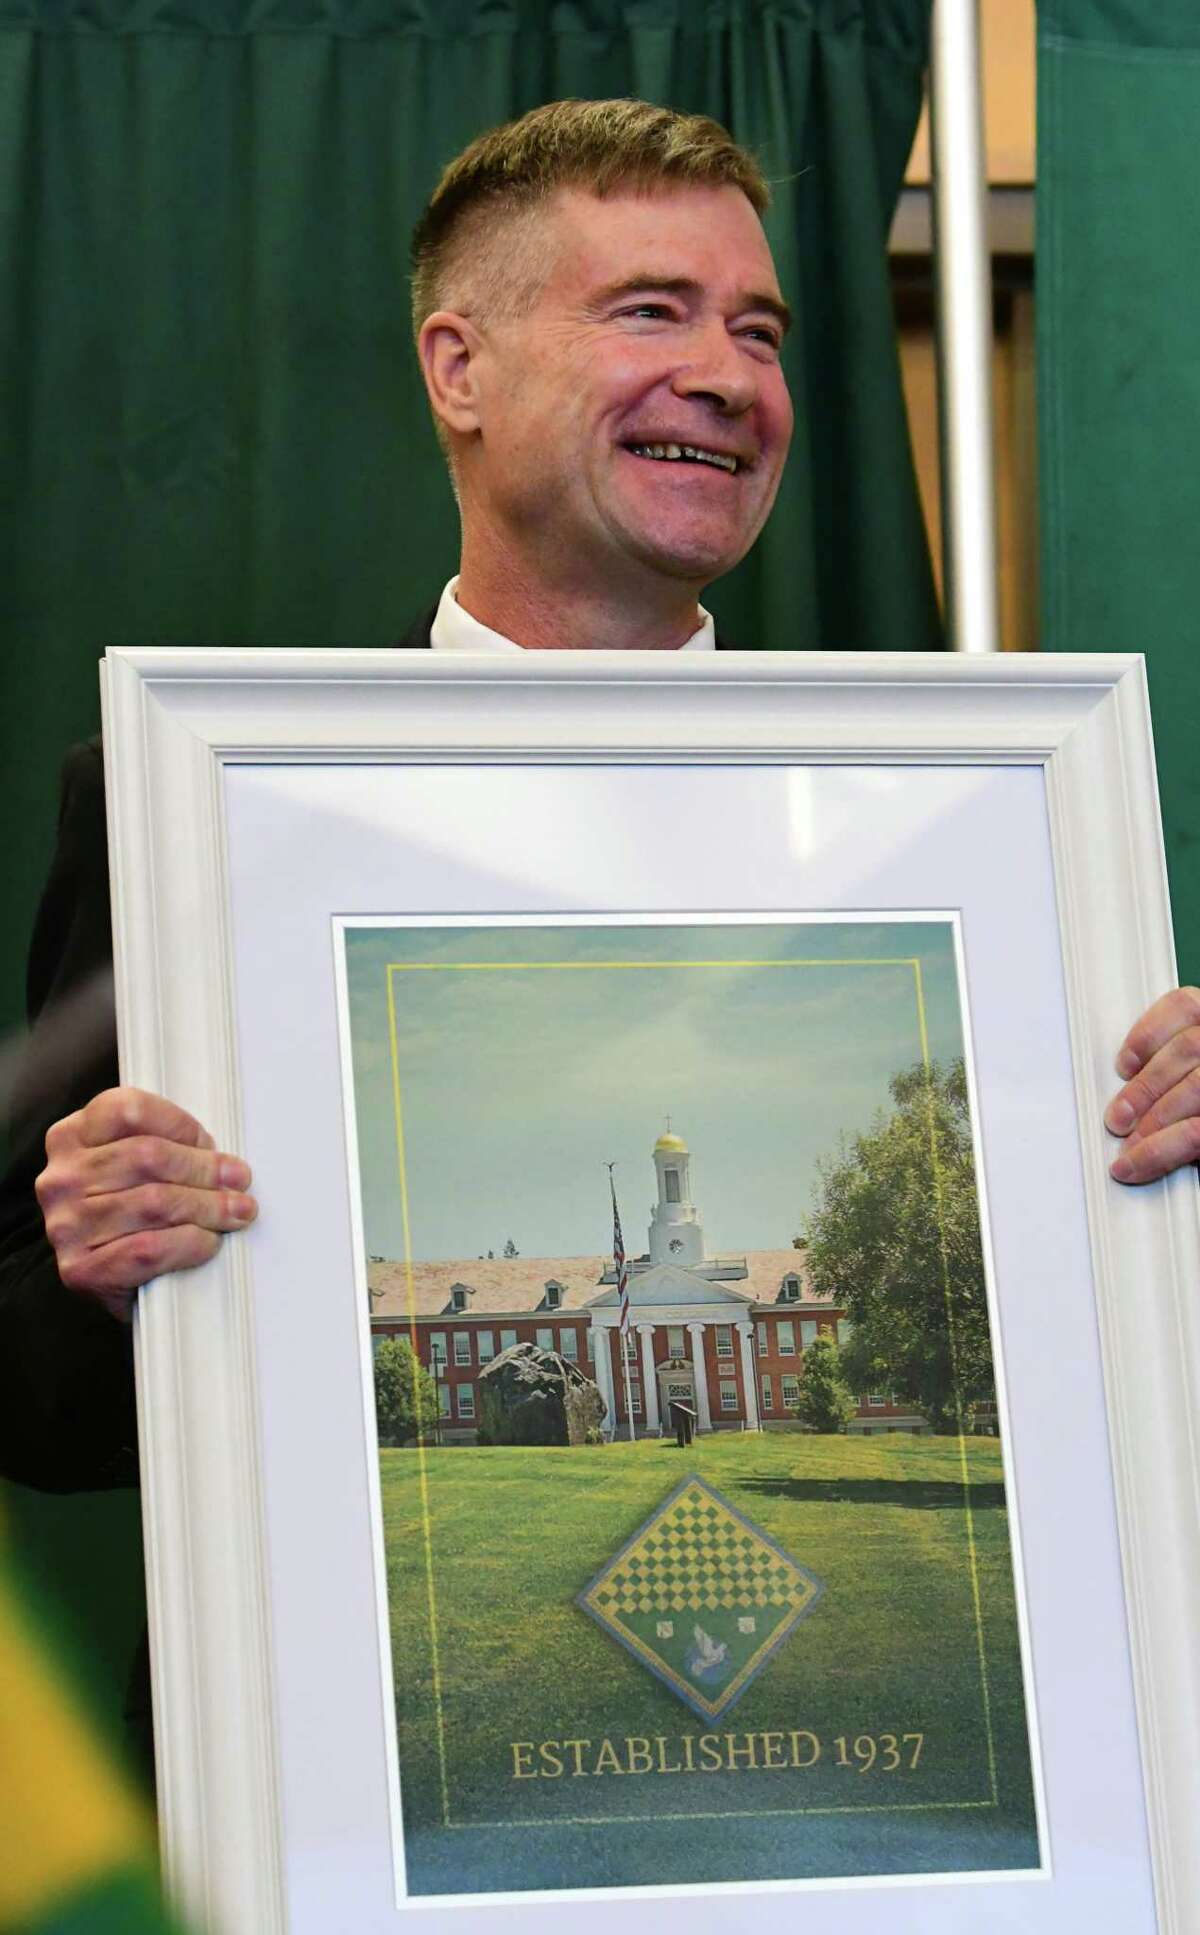 Former U.S. Rep. Chris Gibson receives a gift as Siena College announces him as its 12th president at Siena College on Friday, Feb. 14, 2020 in Loudonville, N.Y. Gibson, Ph.D, graduated from Siena in the class of '86. (Lori Van Buren/Times Union)